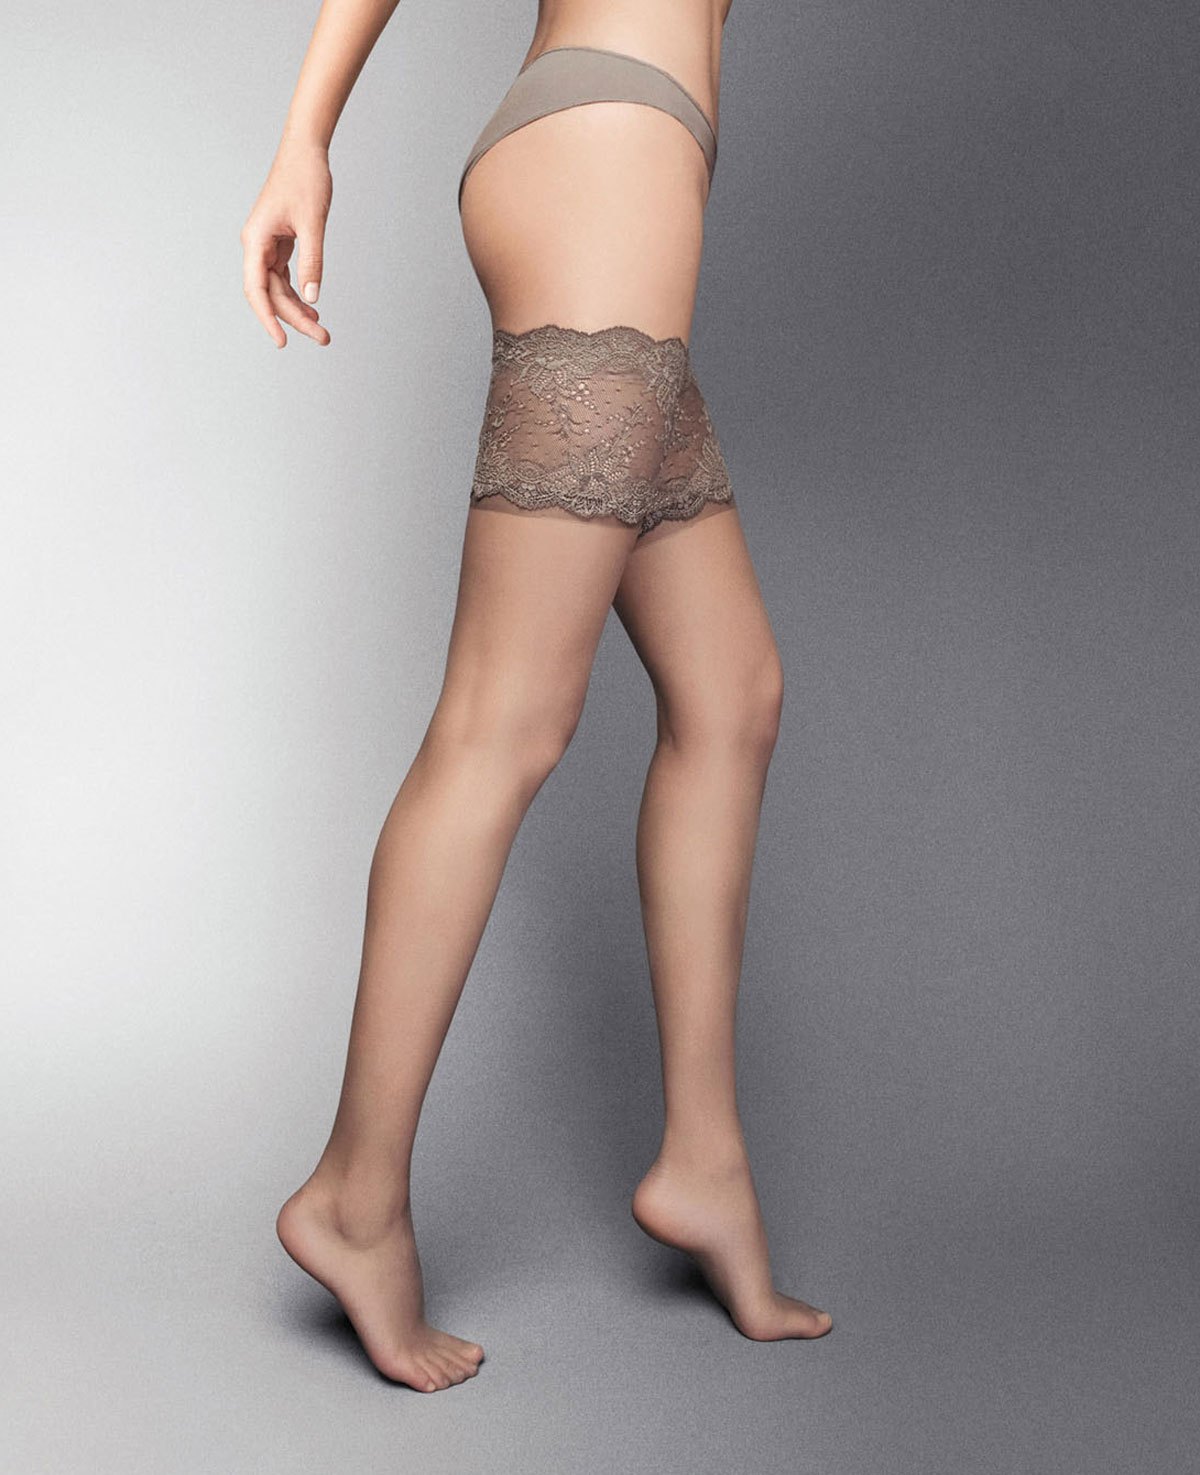 ff0881539 Veneziana Desiderio Lace Top Hold Ups at Stockings Direct